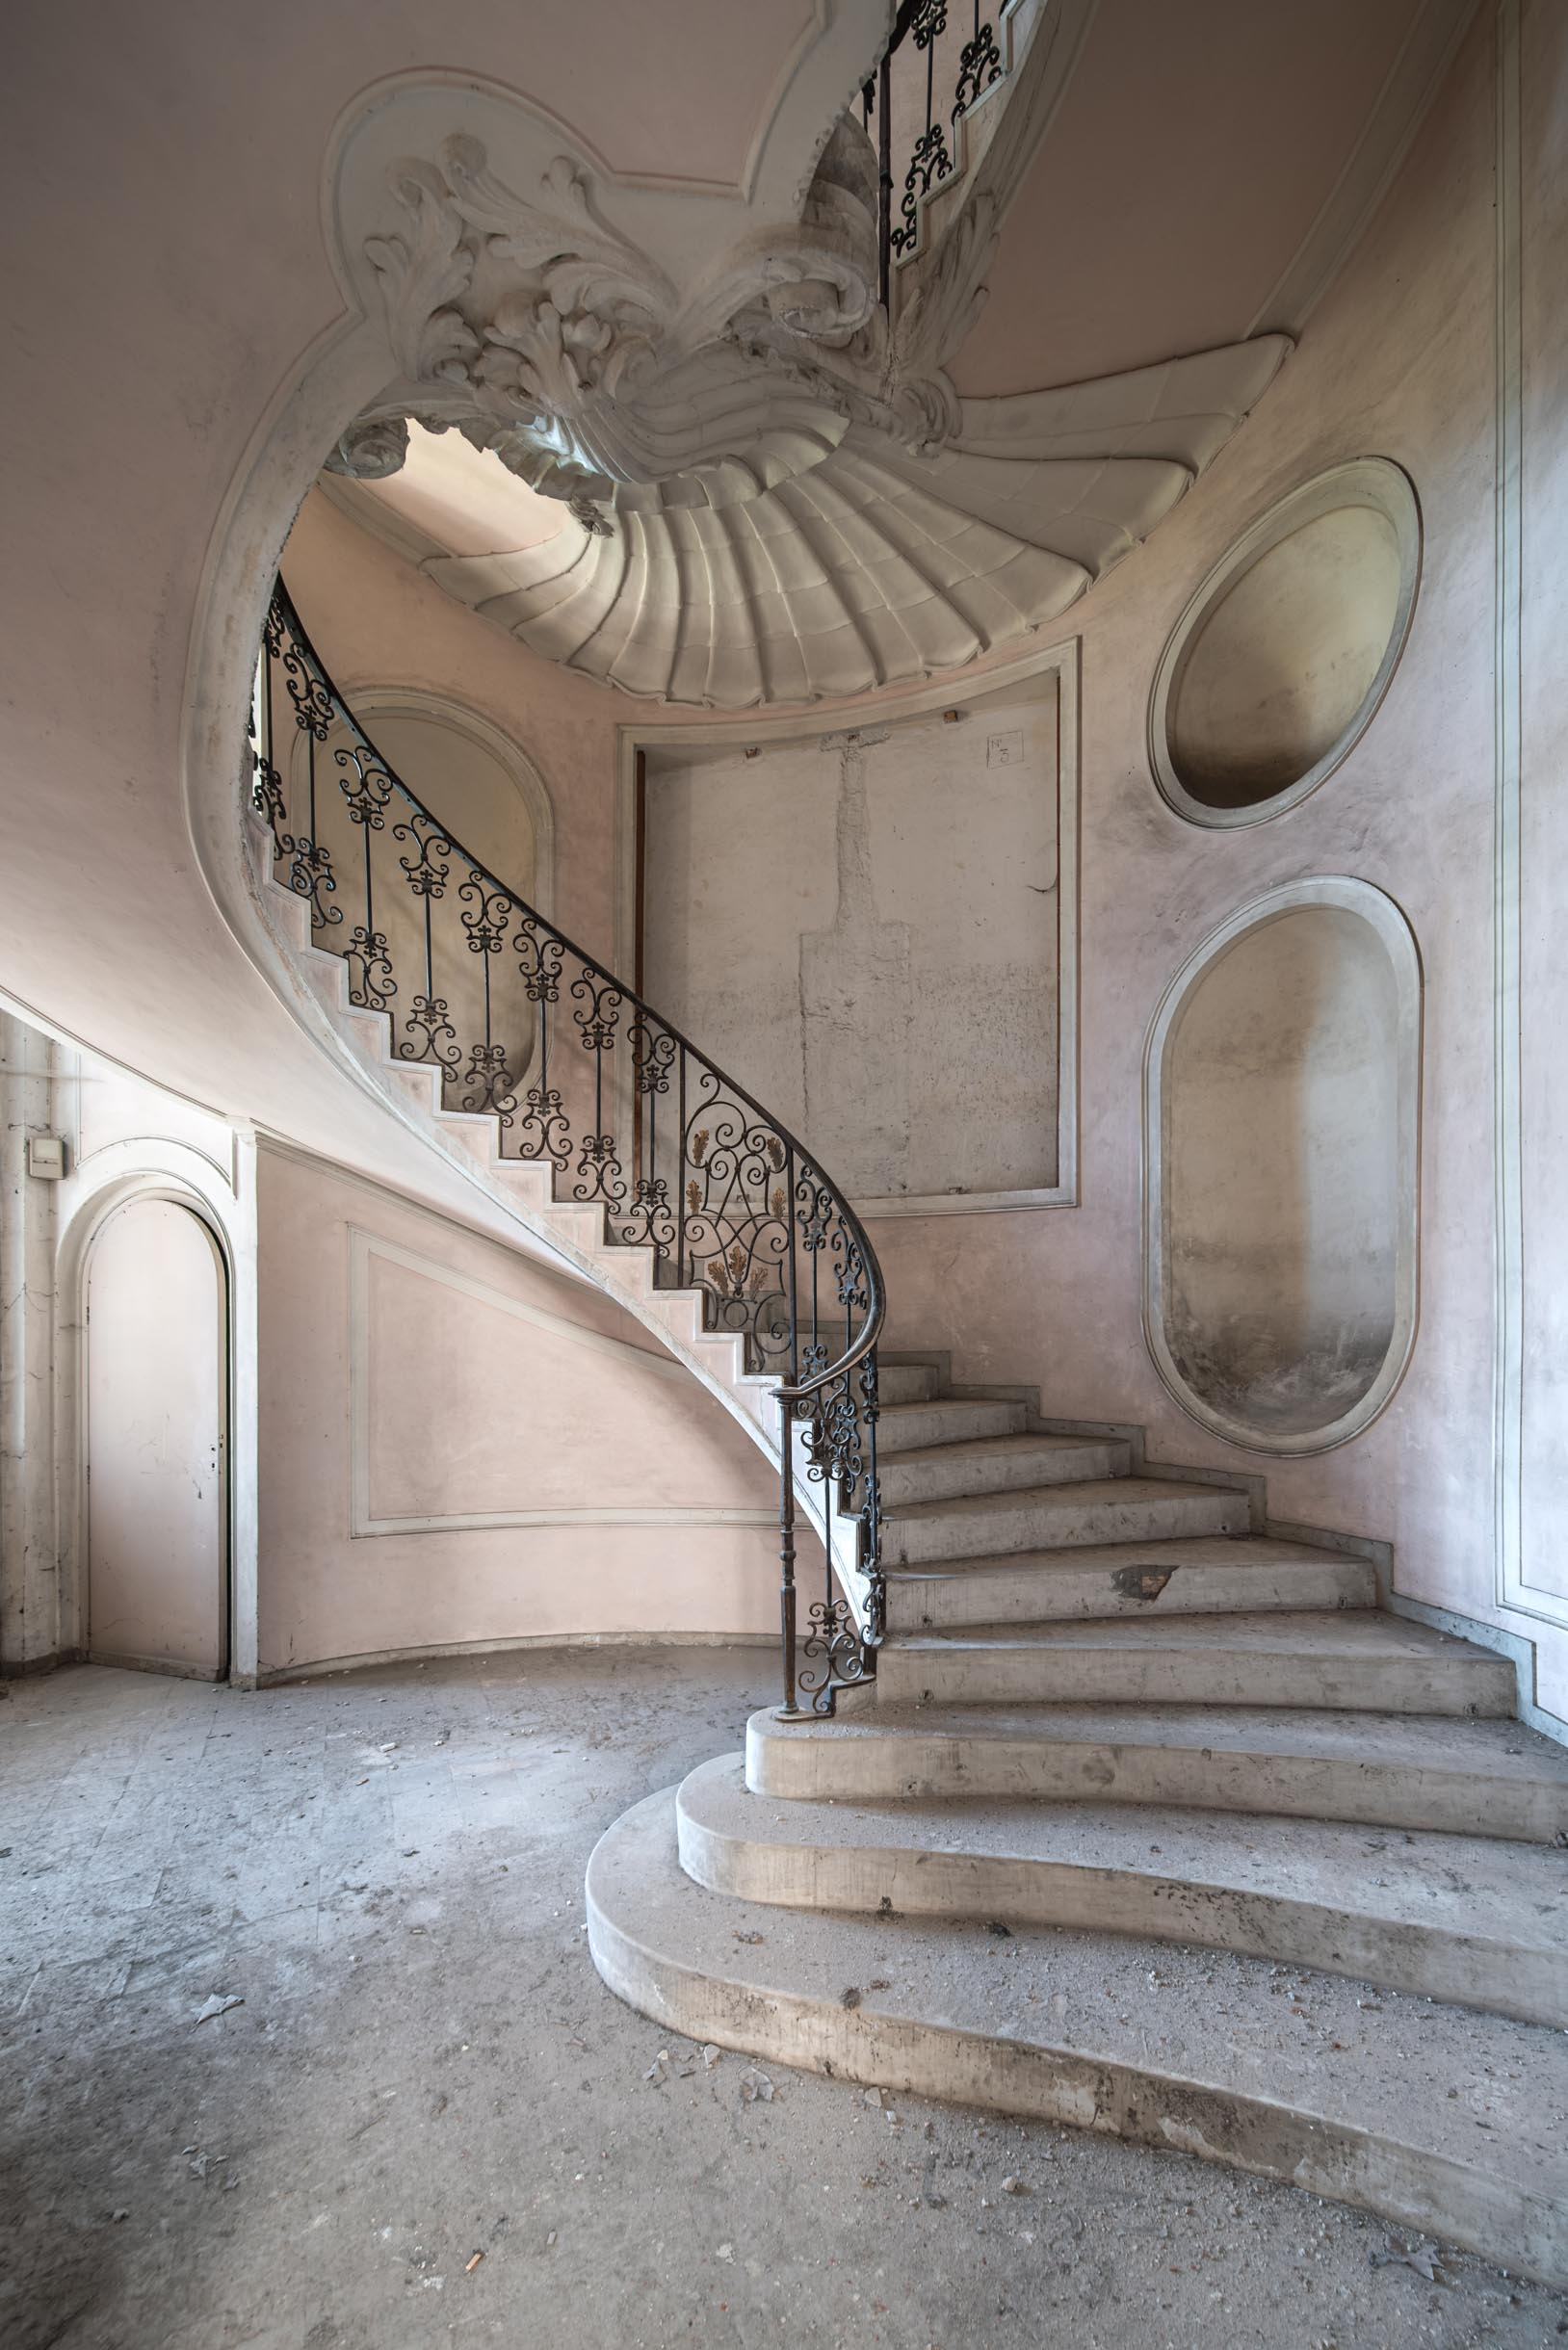 A highly decorated spiral stairwell leading up to the second floor.